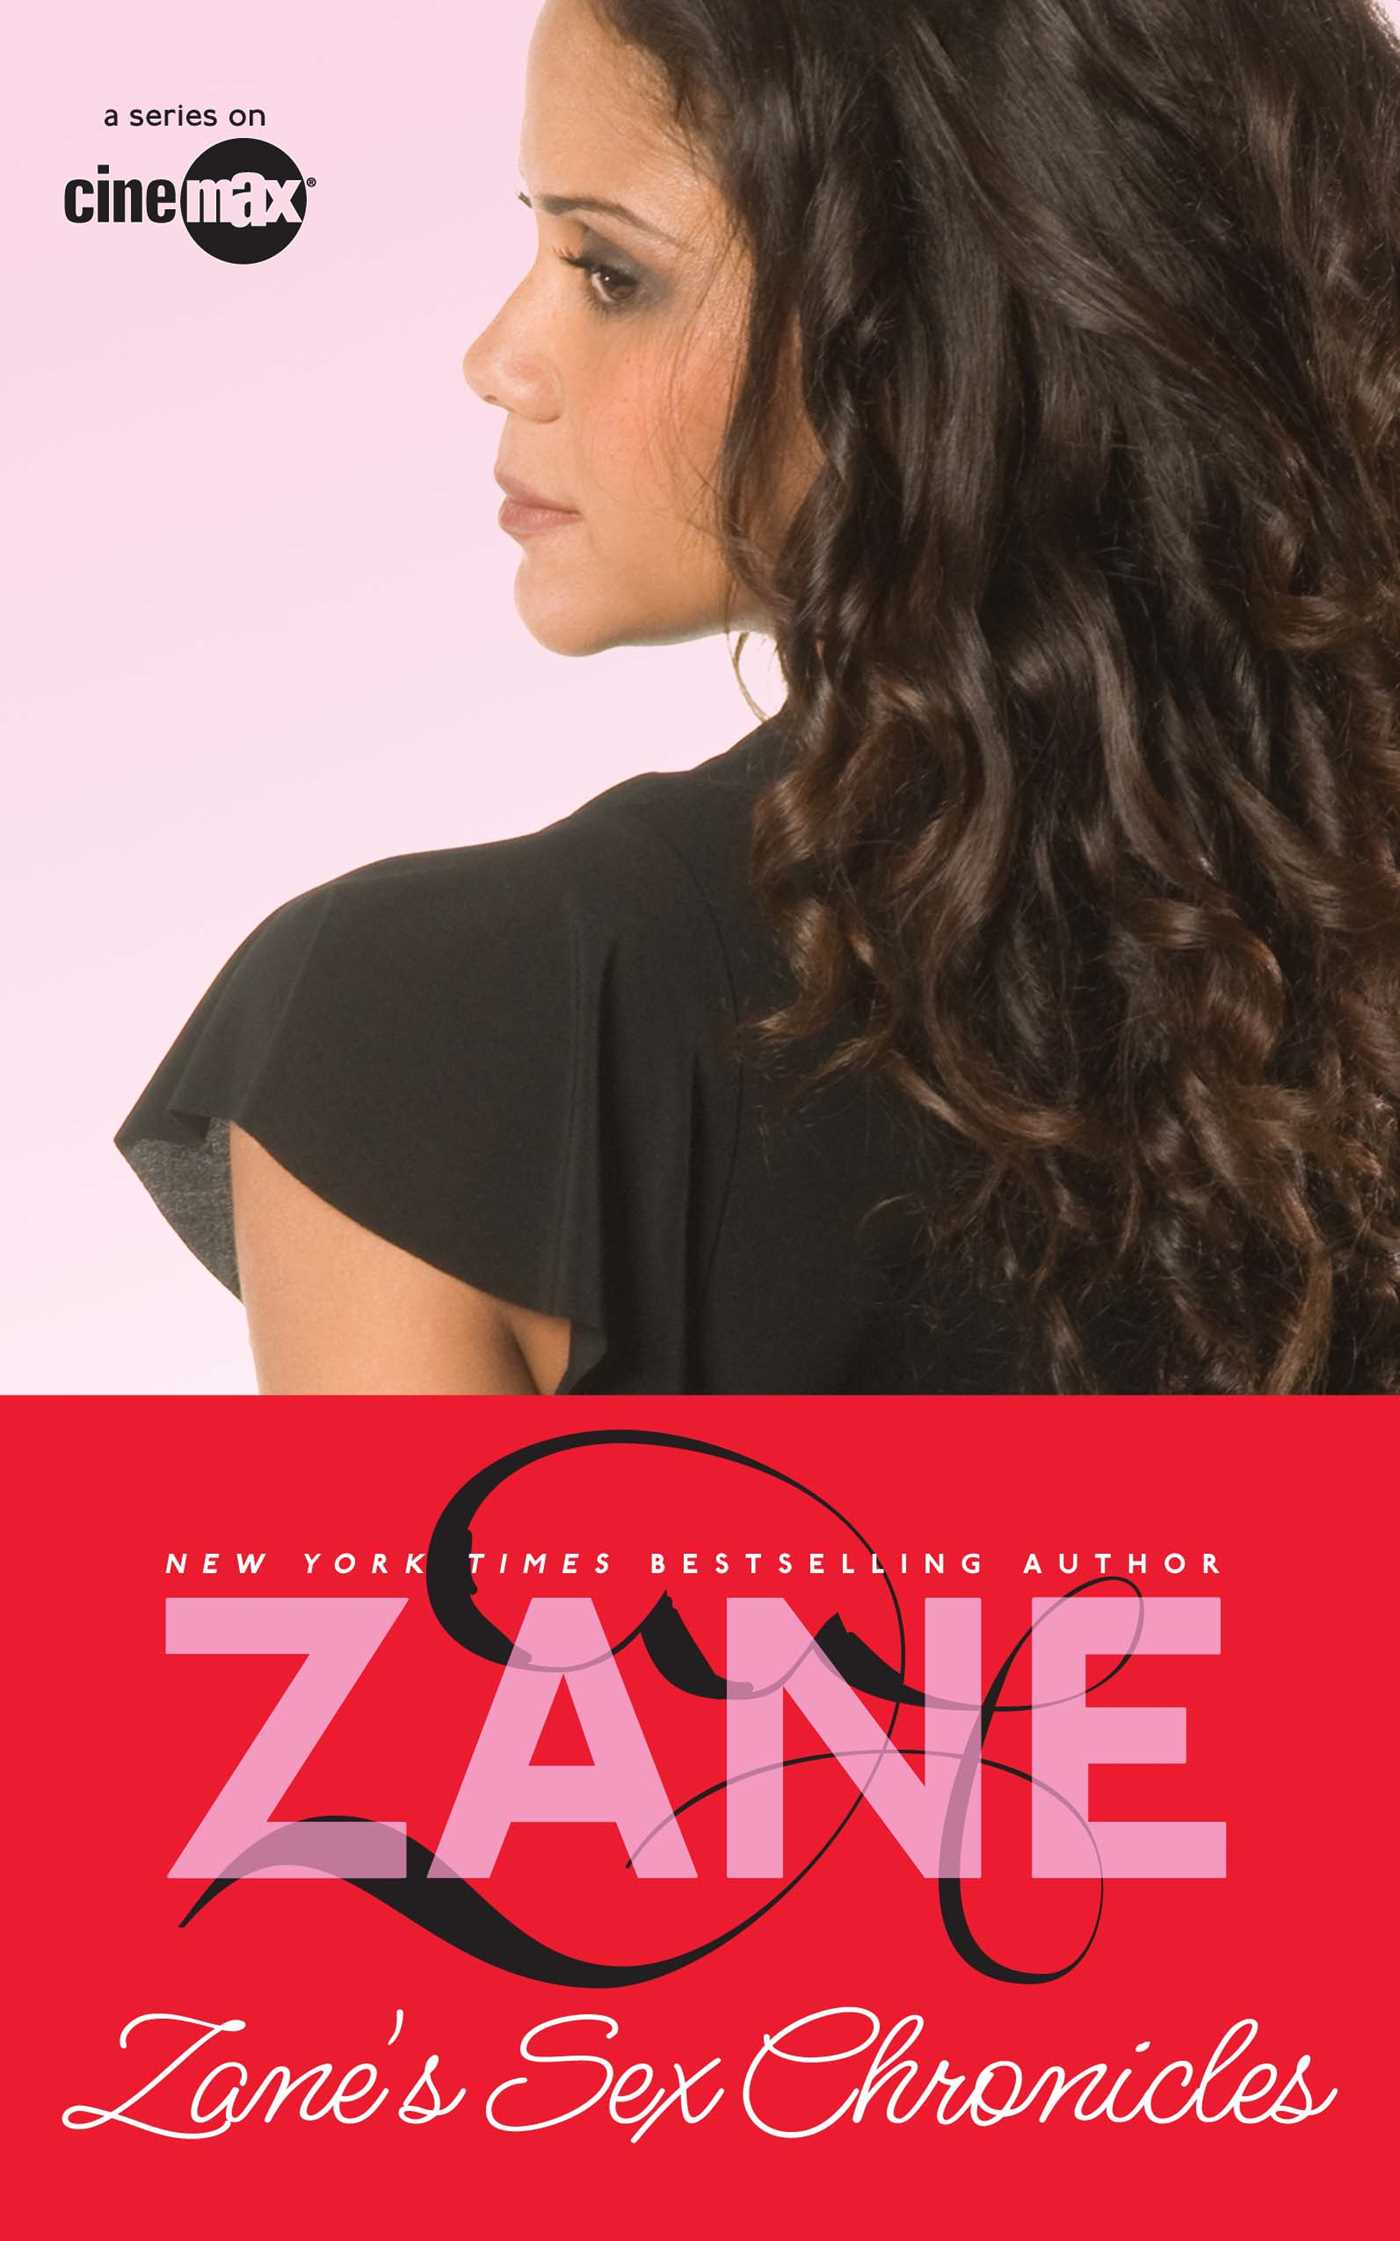 Zanes sex chronicles episodes online